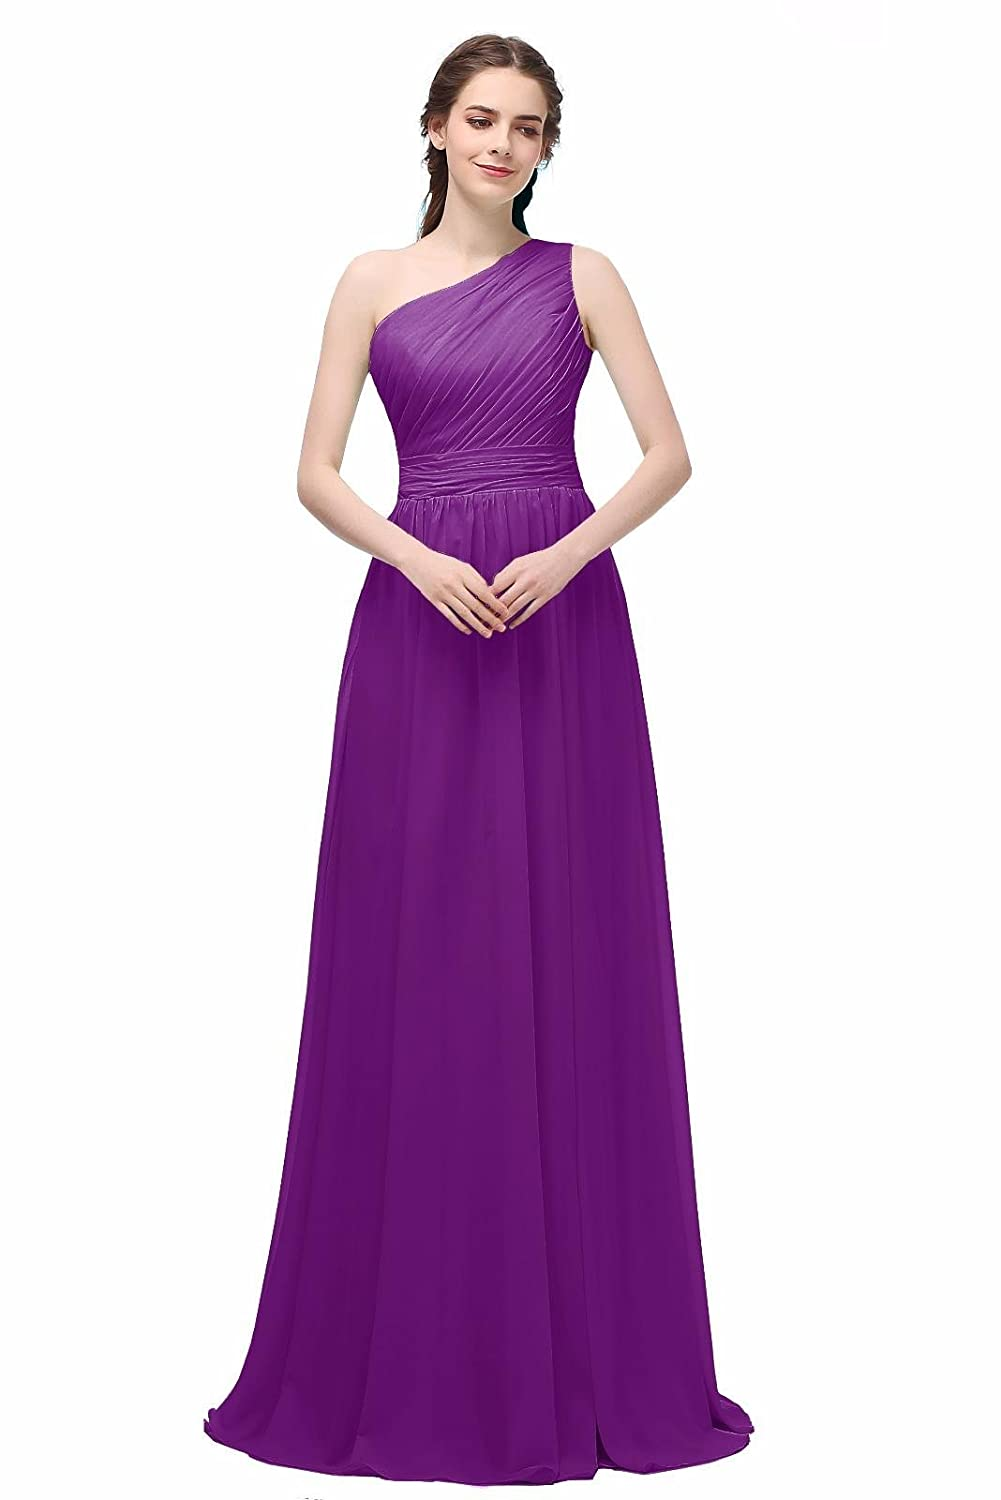 Ever Girl Women's Bridesmaid Chiffon Prom Dresses Long Evening Gowns